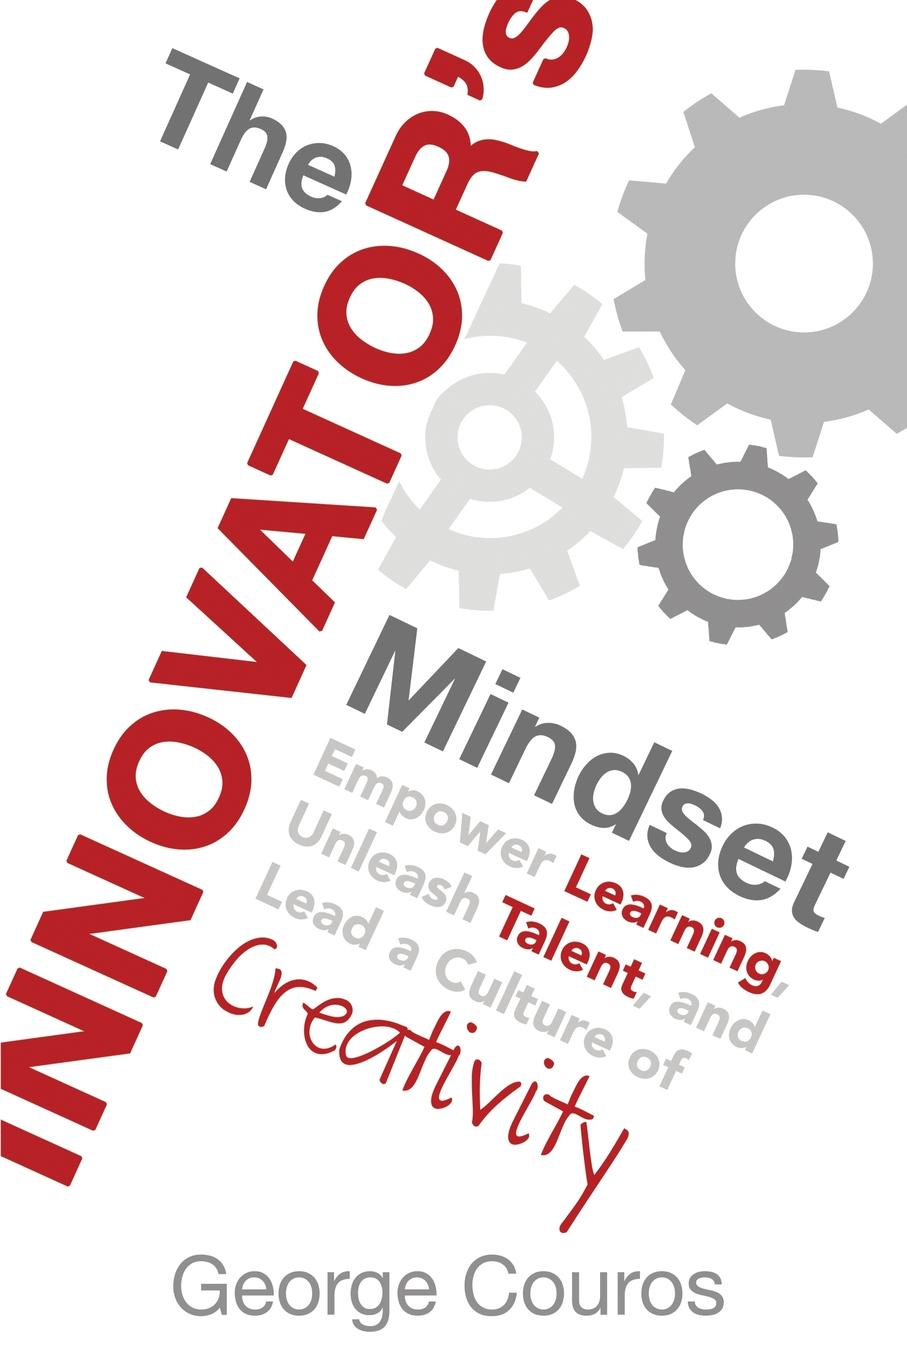 George Couros The Innovator.s Mindset. Empower Learning, Unleash Talent, and Lead a Culture of Creativity demystifying learning traps in a new product innovation process